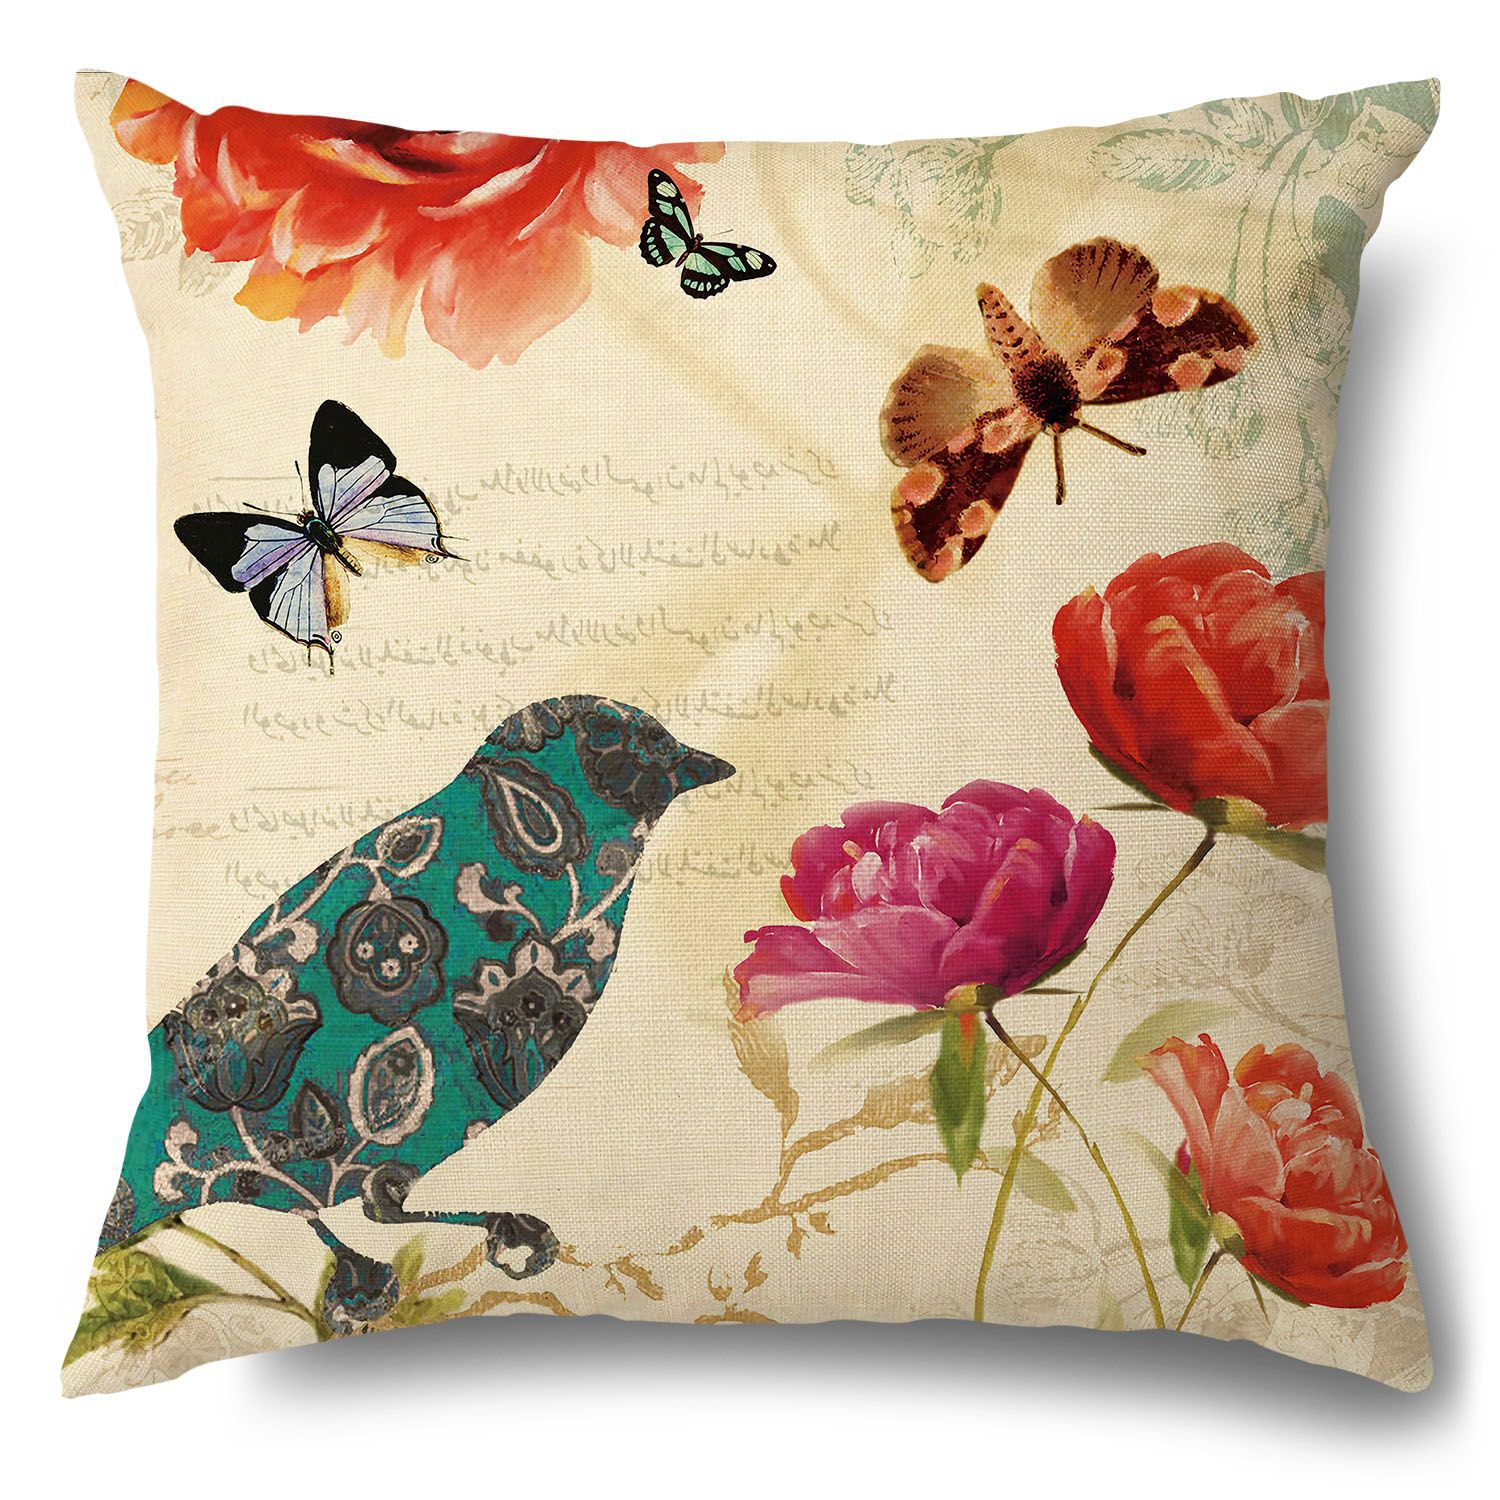 One-with-Nature Pillow Cover for Cute Living Room Decor